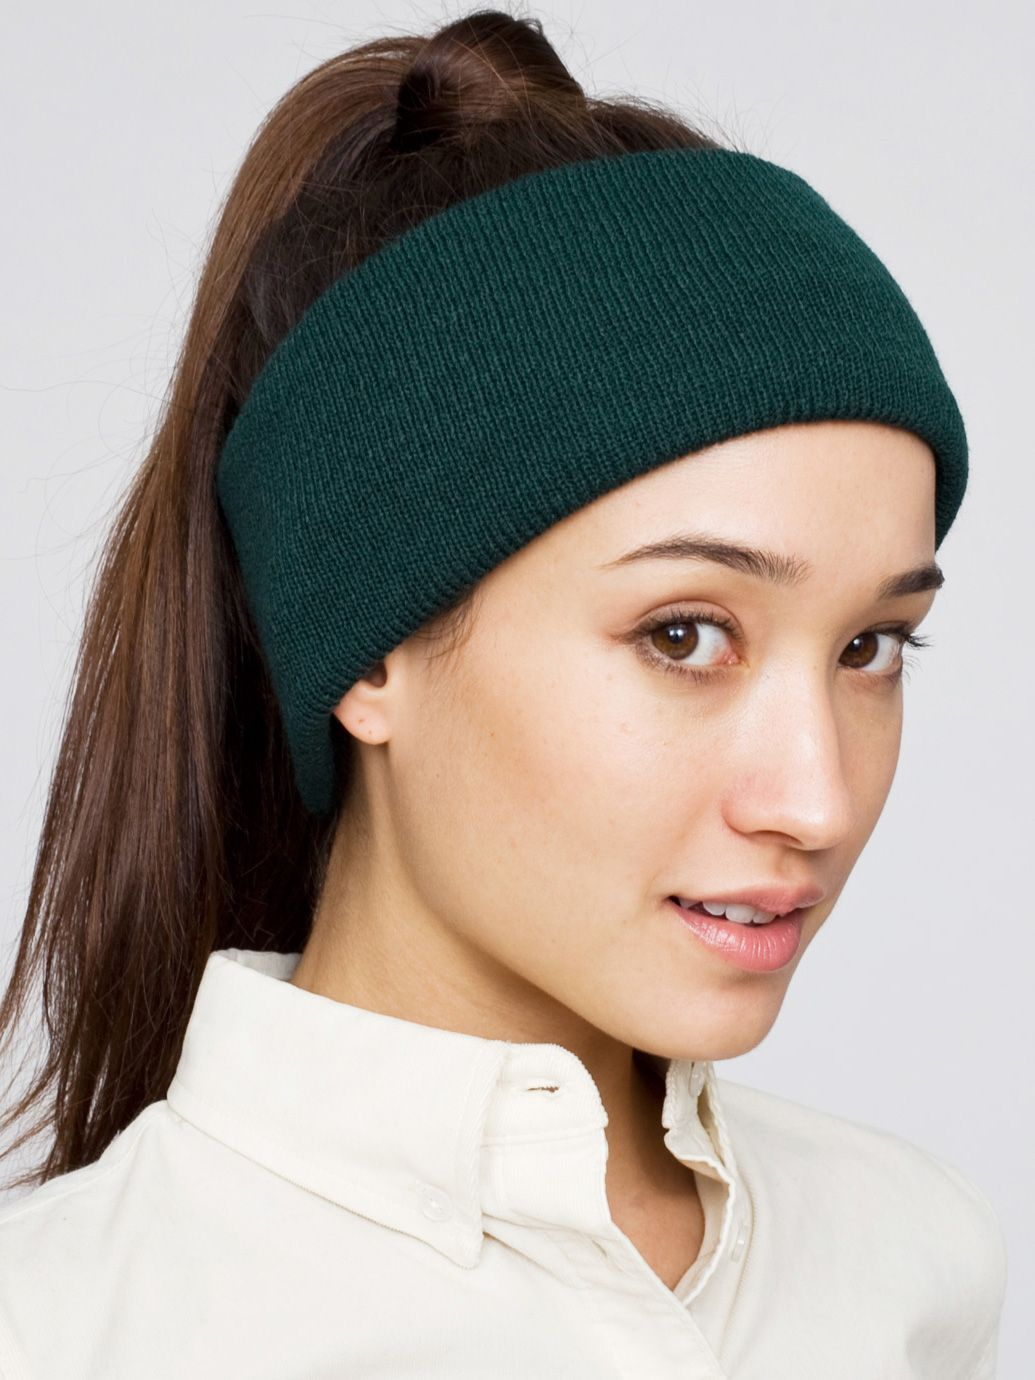 Buy How to american wear apparel headband picture trends